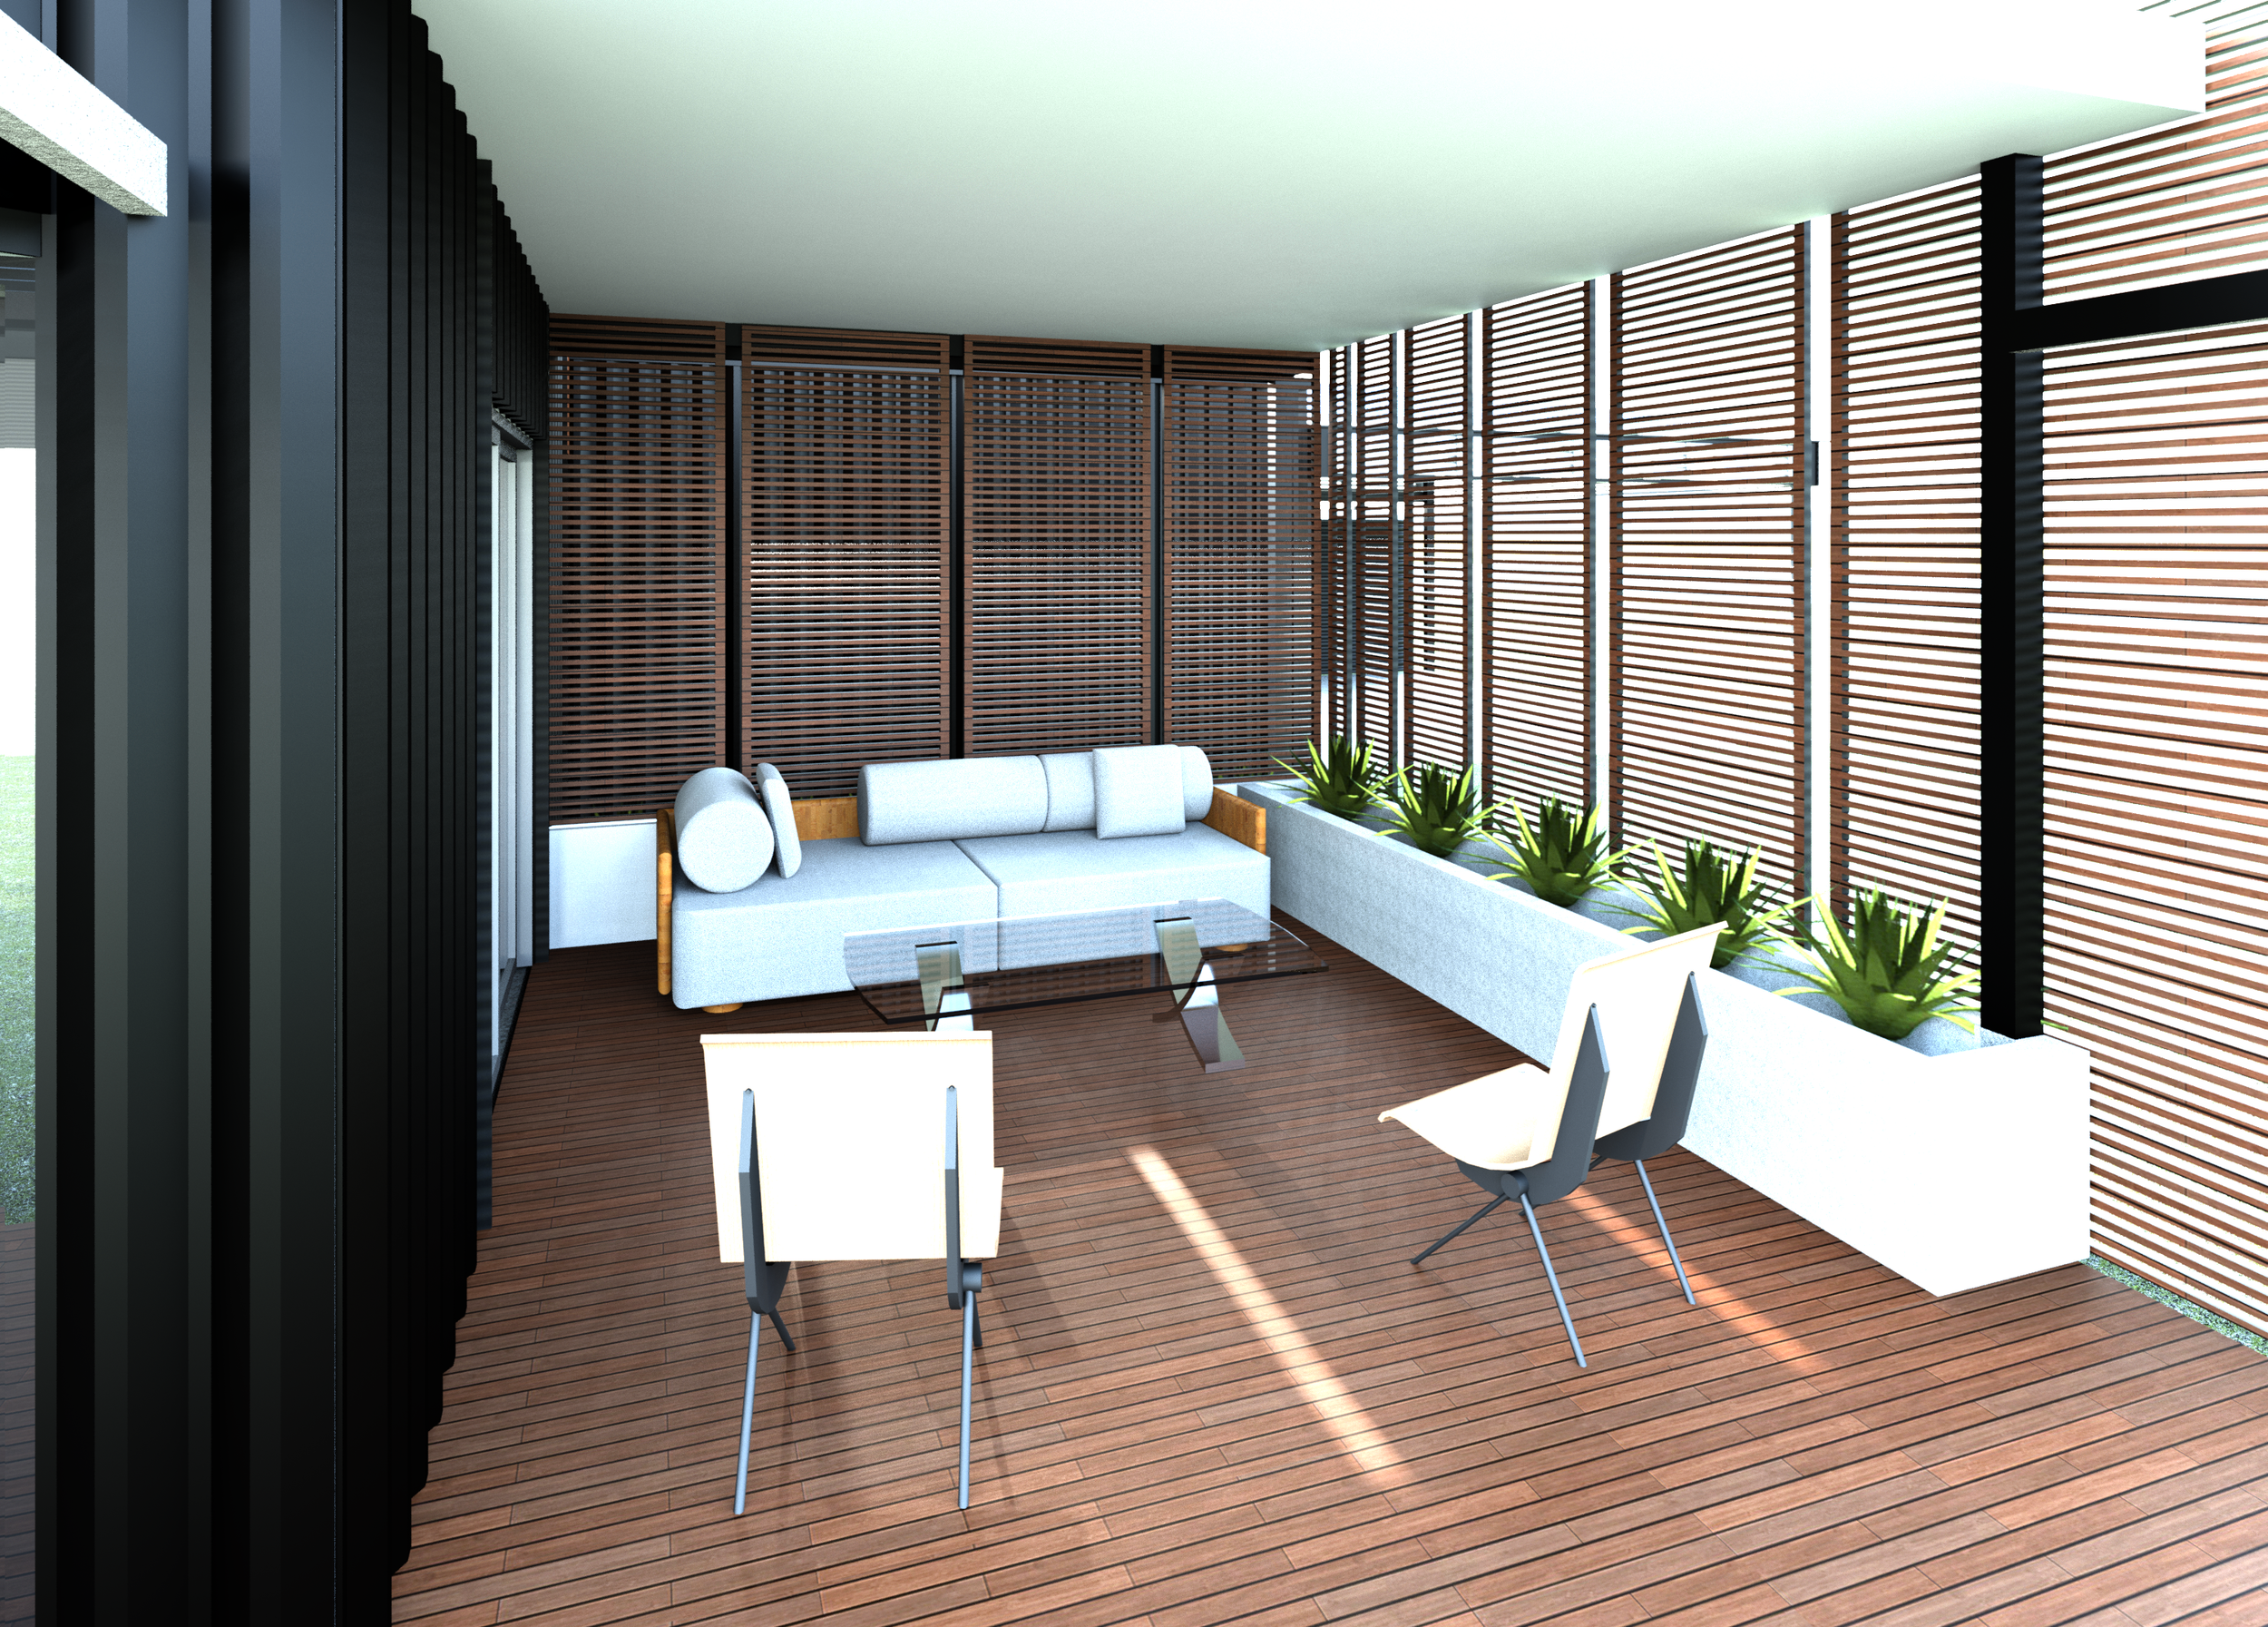 2_CONTAINER_HOUSE_13_12_15.rte_2015-Dec-13_07-17-52PM-000_3D_View_146.png